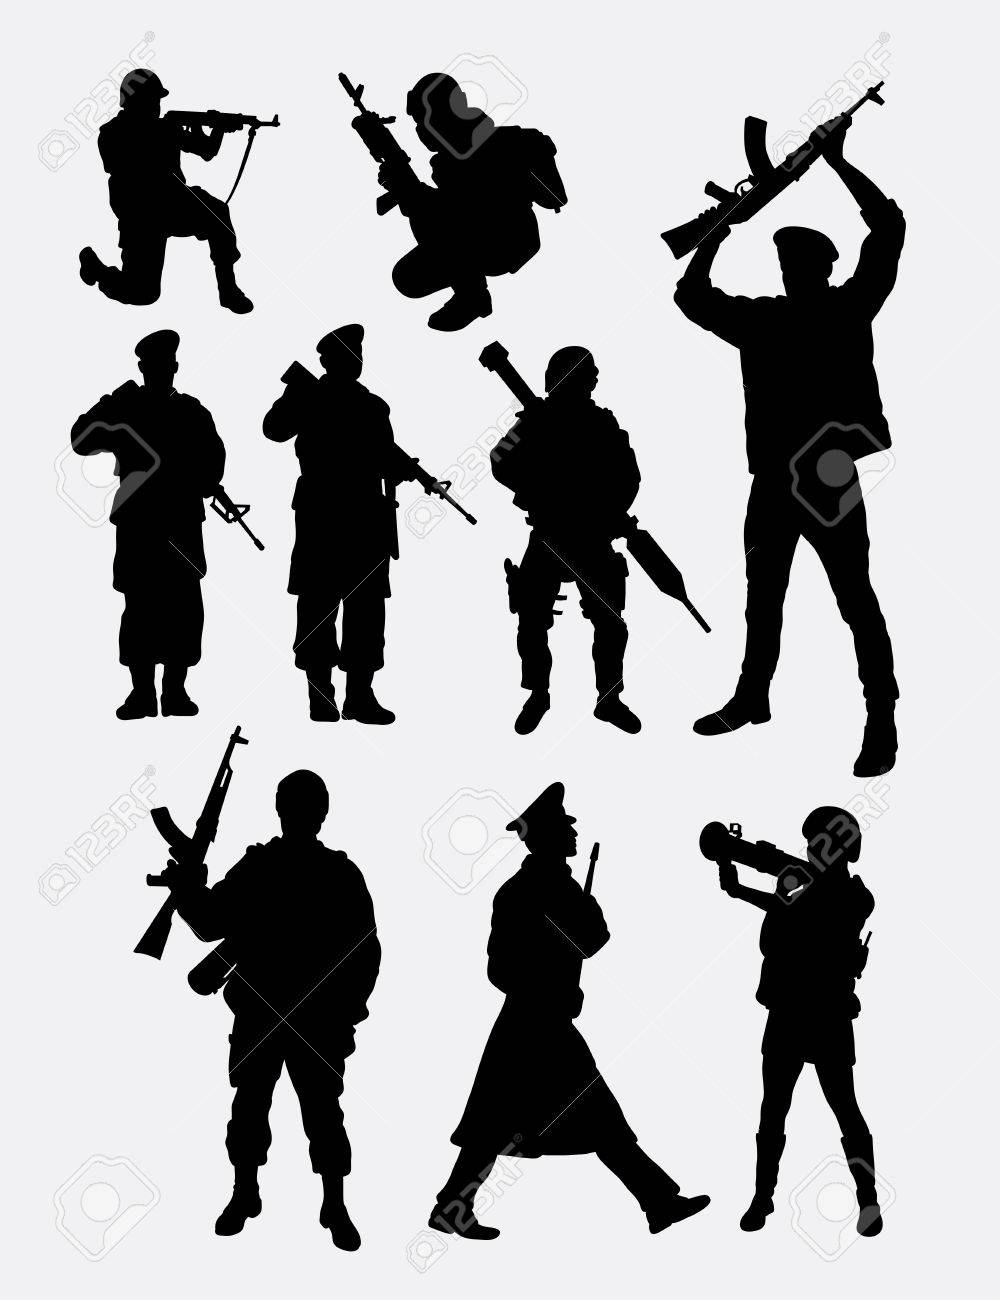 Military army soldier police security people profession silhouette good use